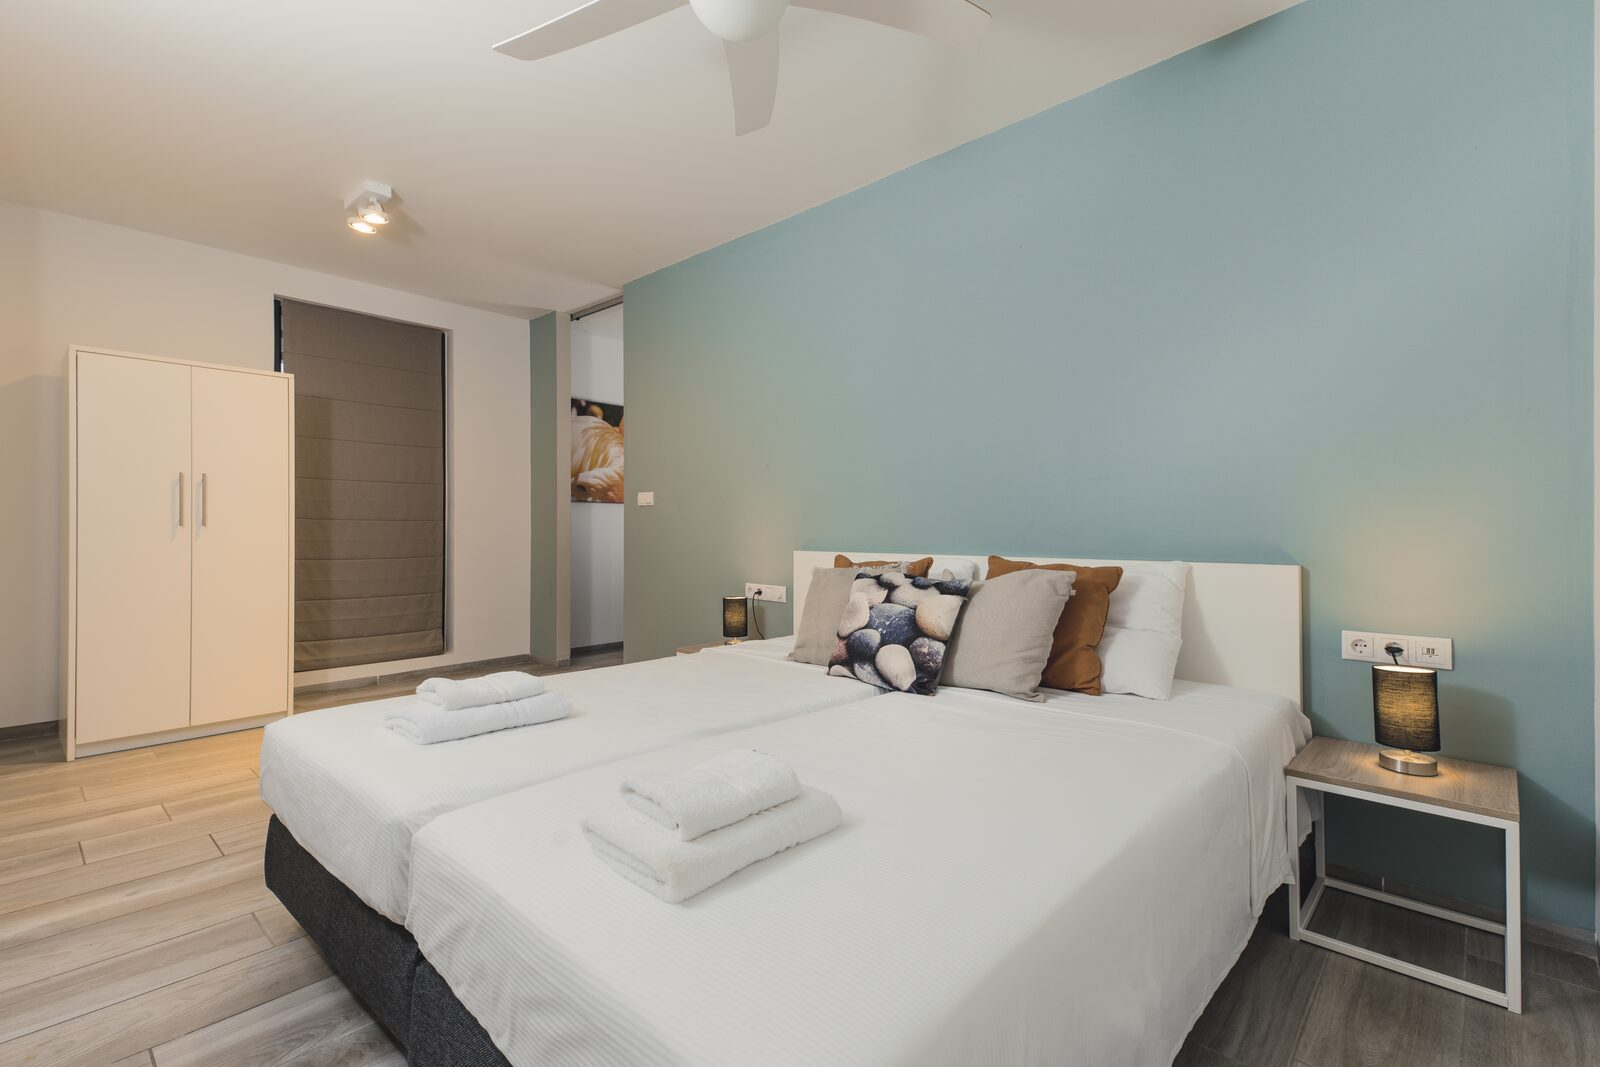 Would you like a holiday to Bonaire? Resort Bonaire offers very spacious apartments on a beautiful resort.